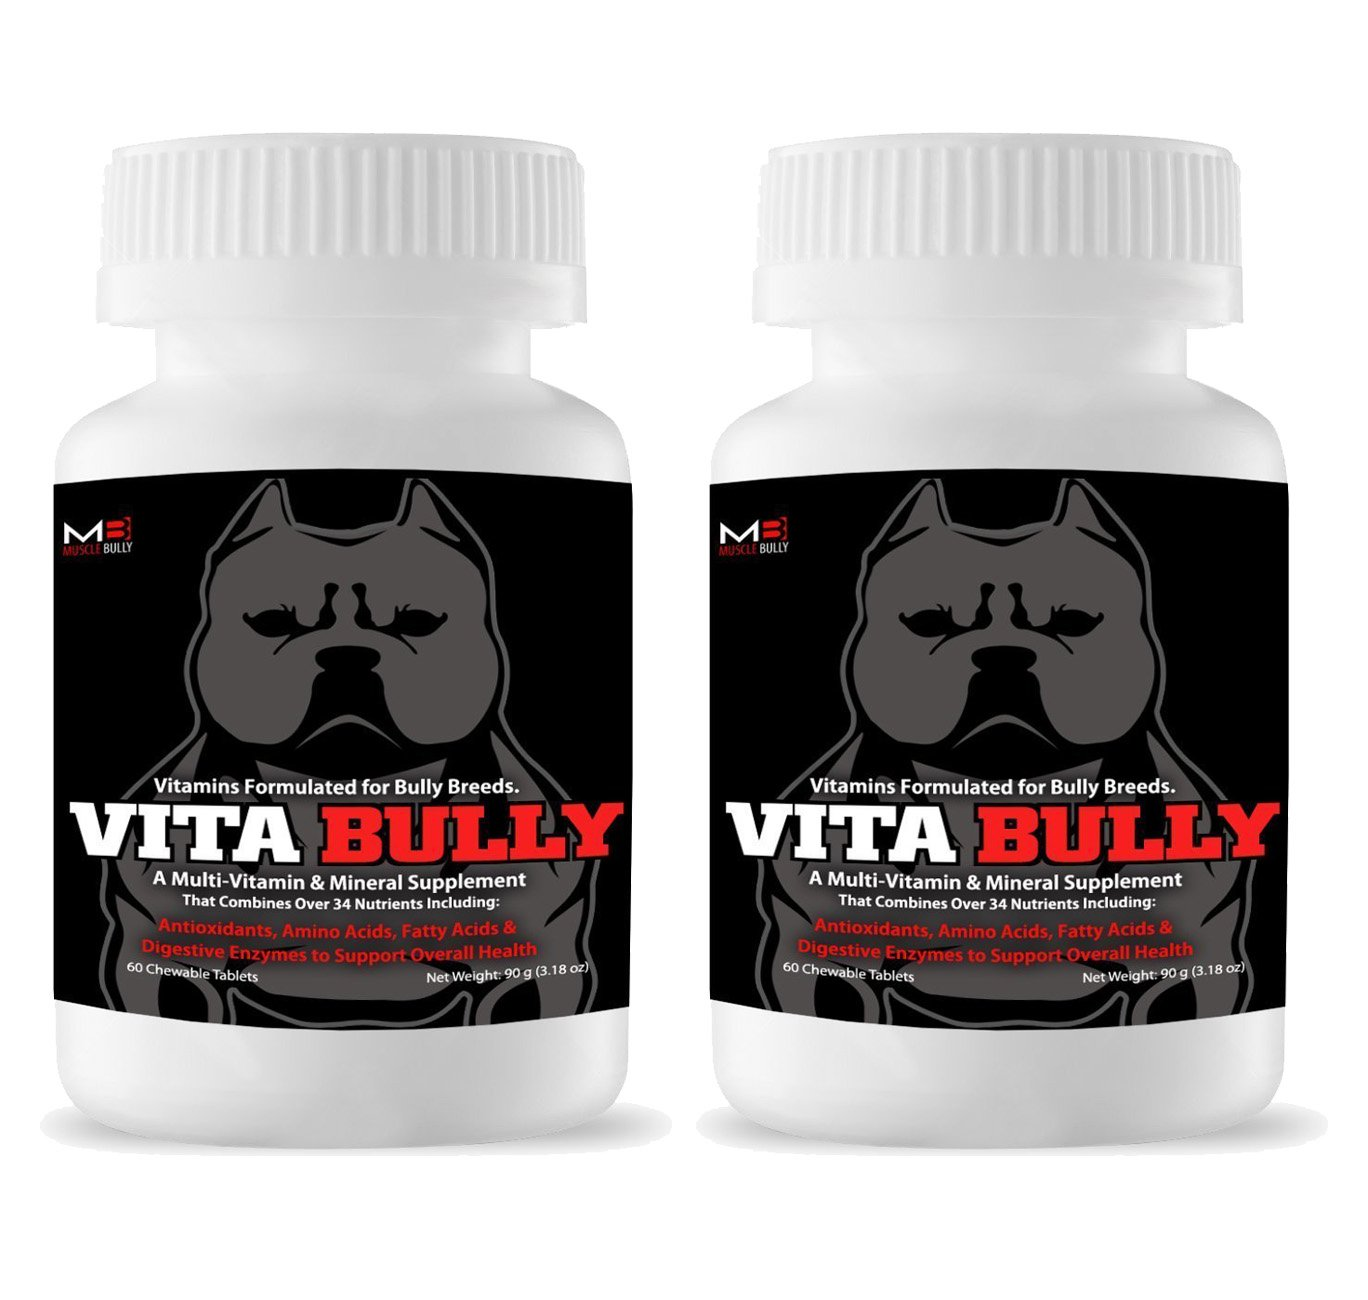 2 Pack Vita Bully Supplemento per Bully Breeds: Pit Bulls, American Bullies, Exotic Bullies, Bulldogs, Pocket Bullies (120 Tablet) di Muscle Bully